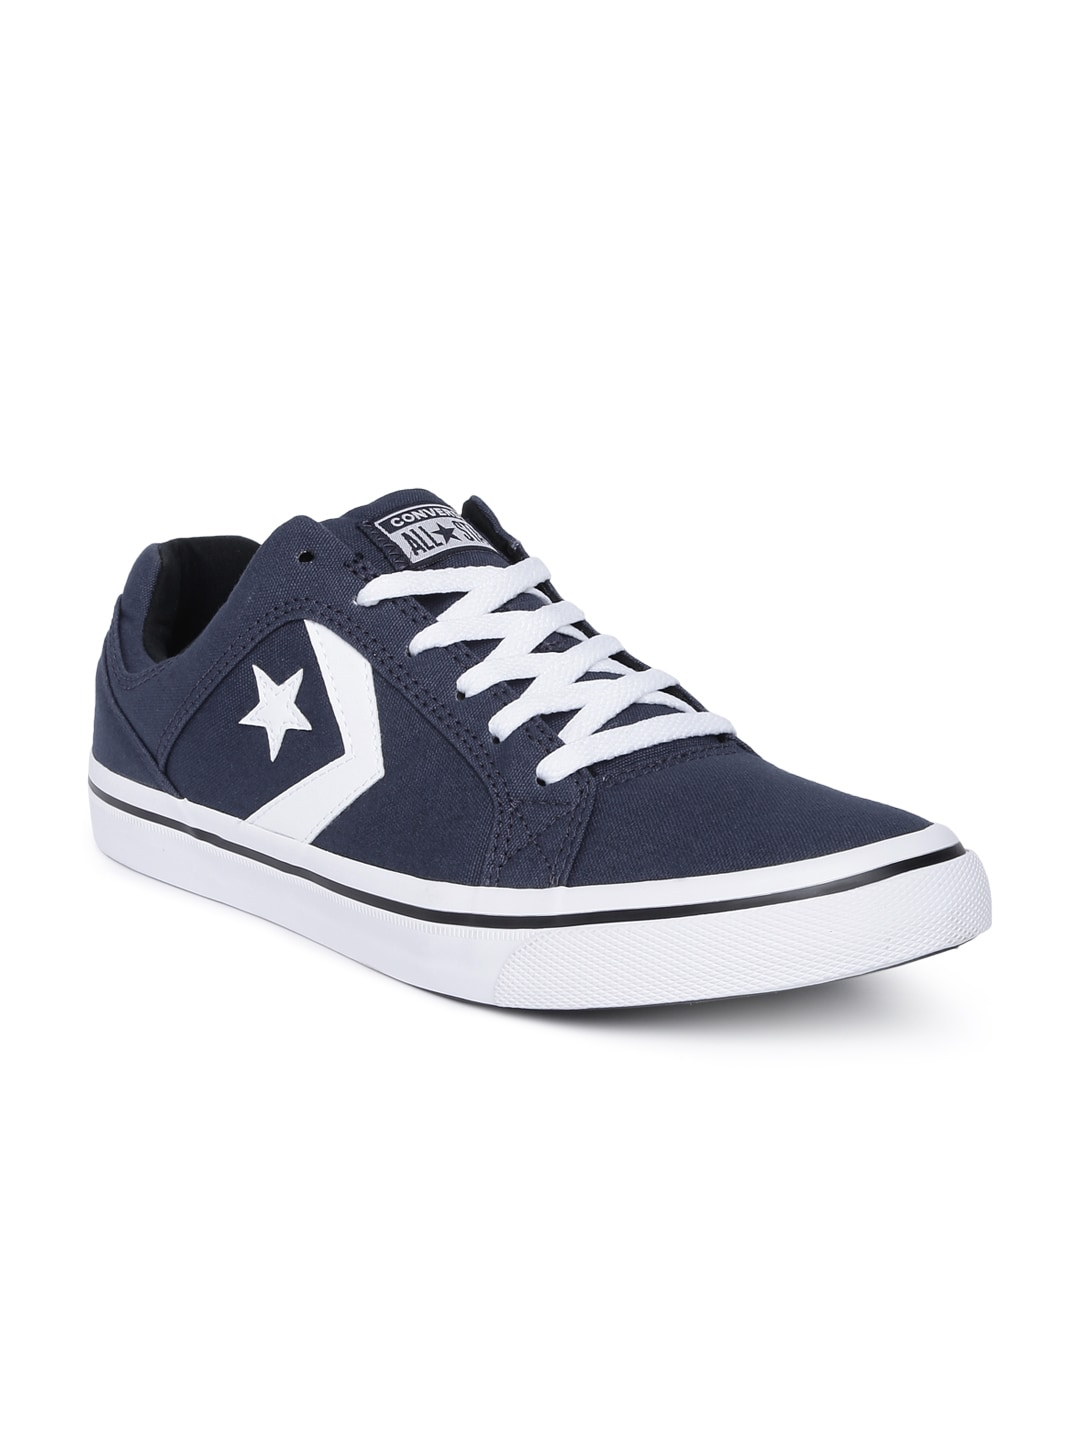 dc8e8f8d60da Converse Shoes - Buy Converse Canvas Shoes   Sneakers Online